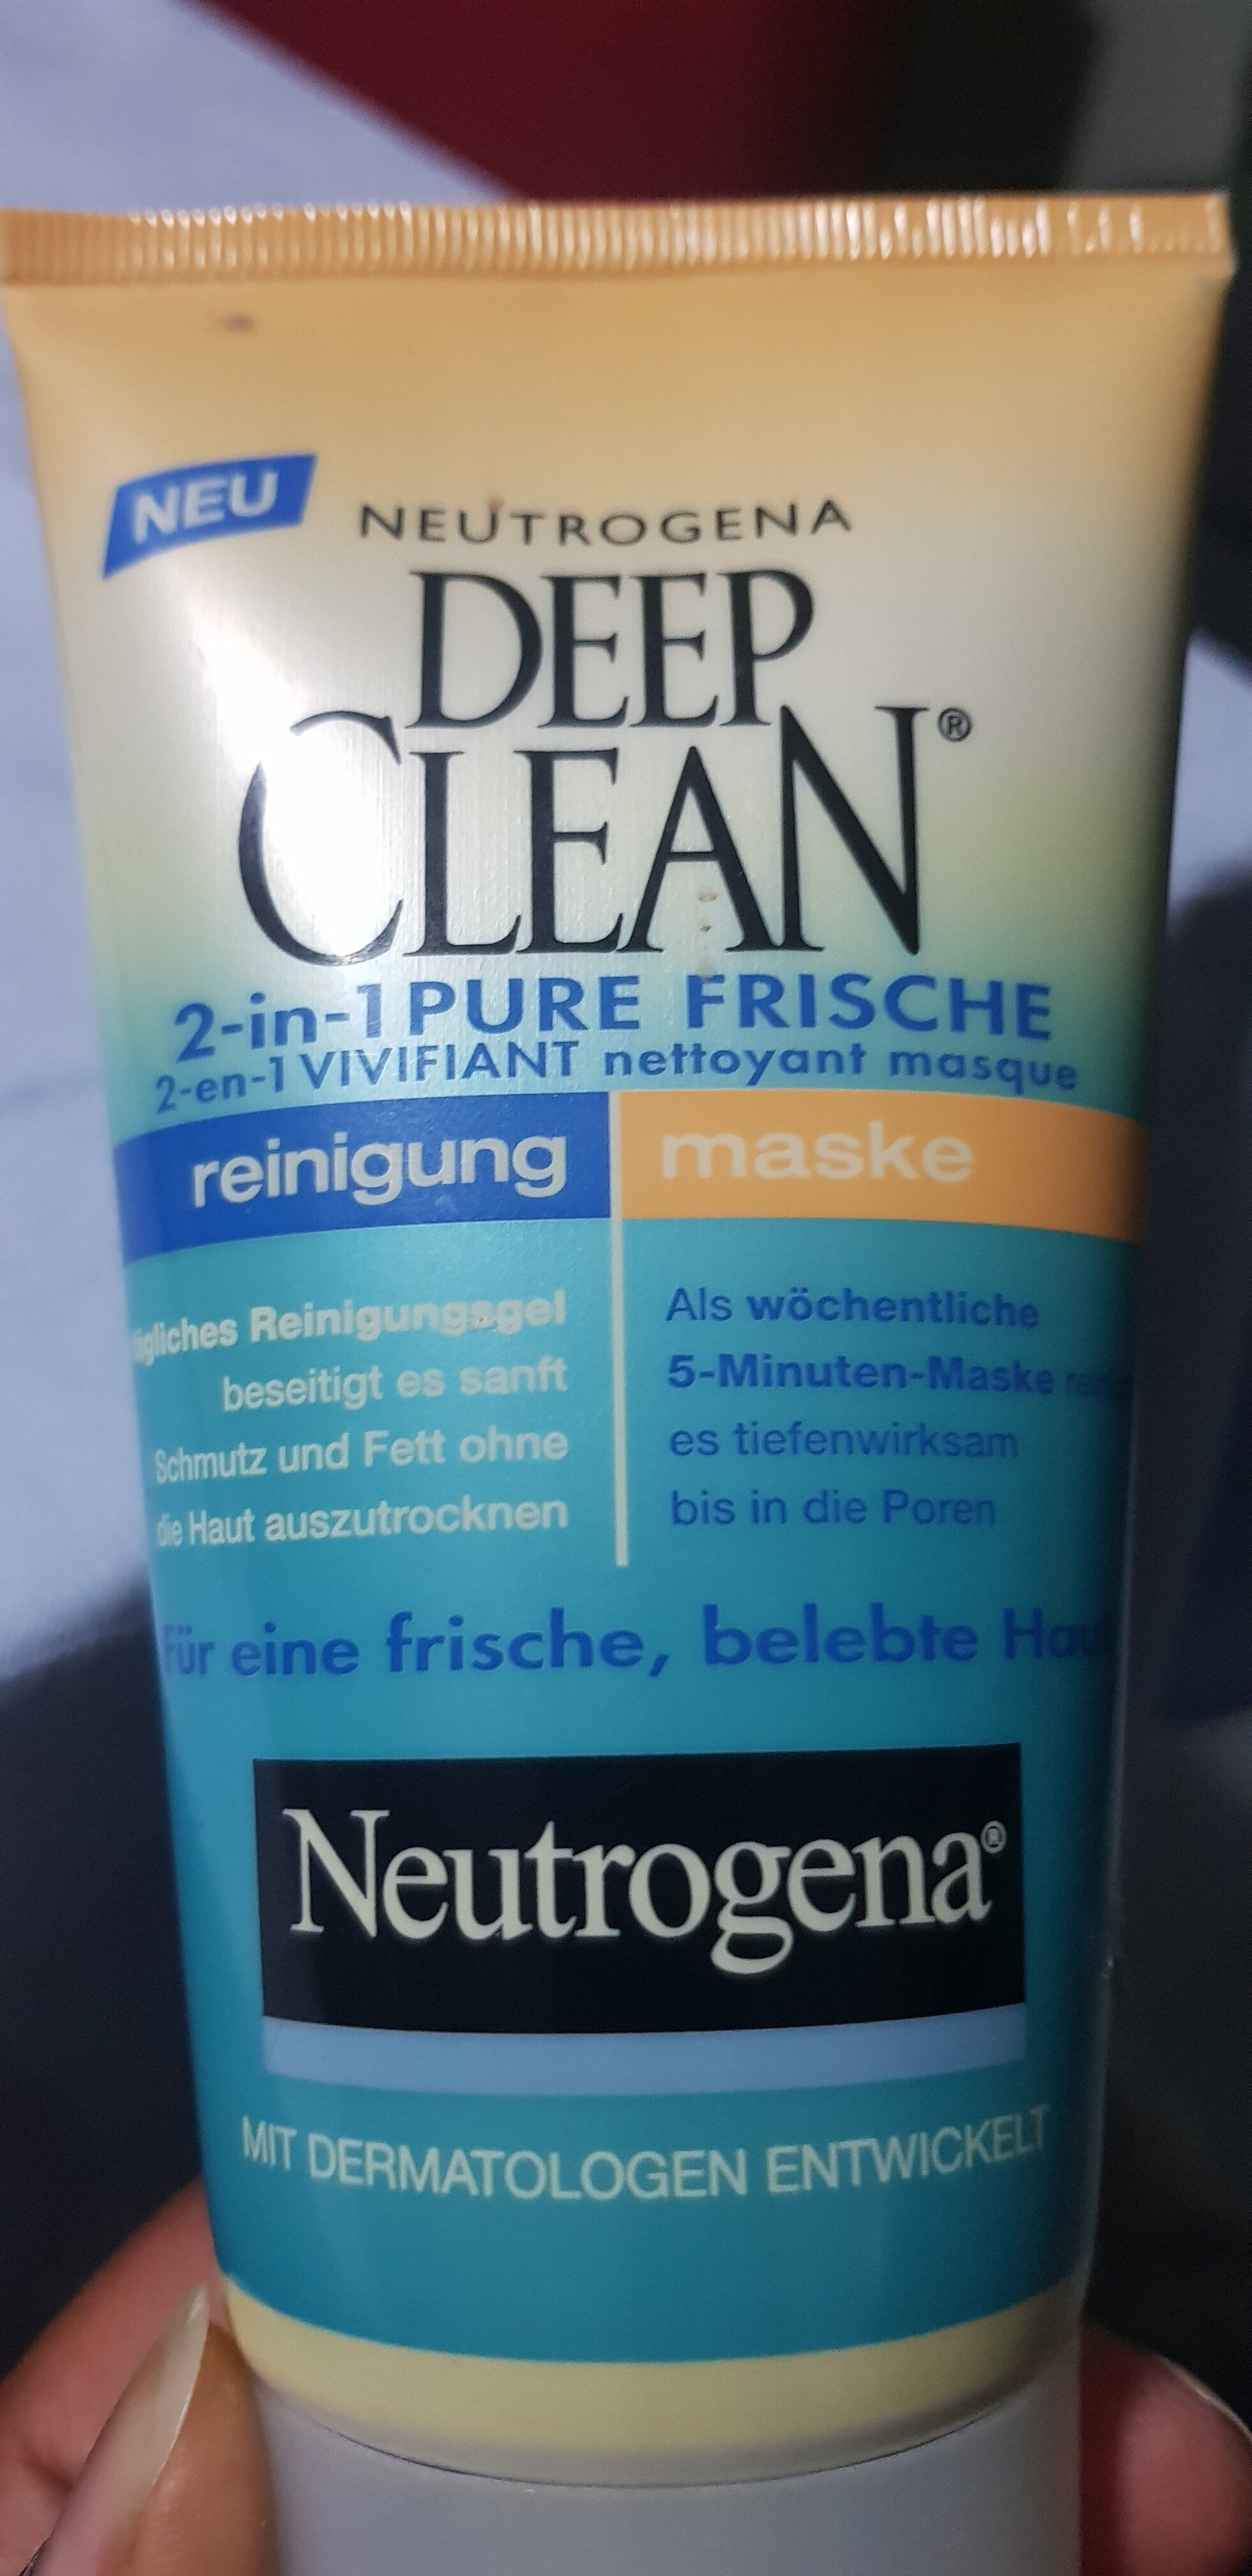 DEEP CLEAN 2 in 1 pure frische - Product - fr